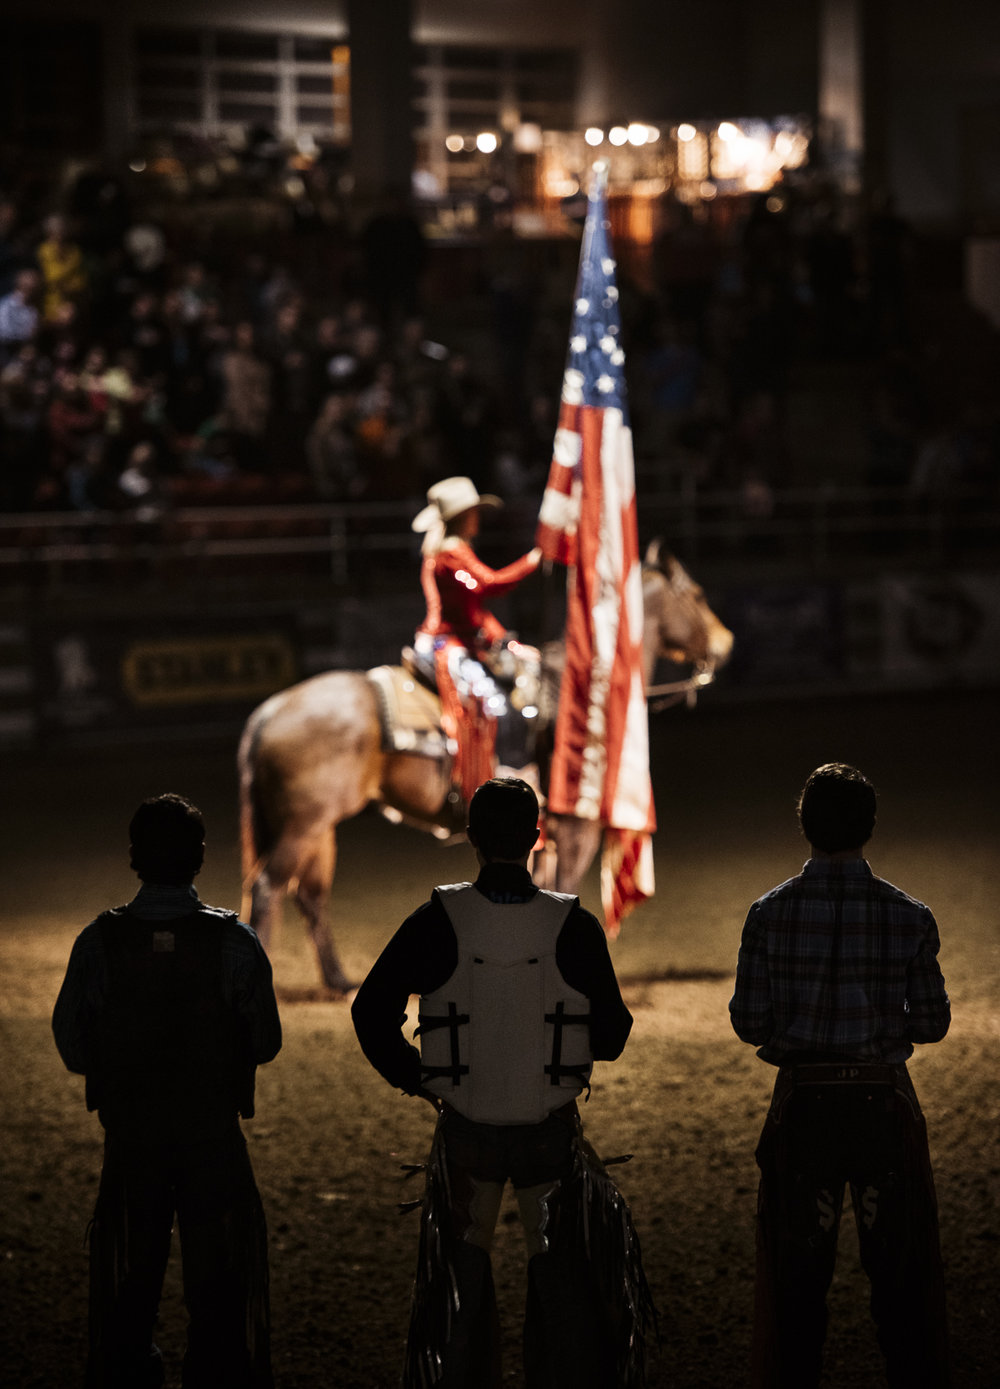 American Flag at bull riding BullMania 2017 rodeo event in Asheville North Carolina at the WNC agricultural center, photography by jack sorokin